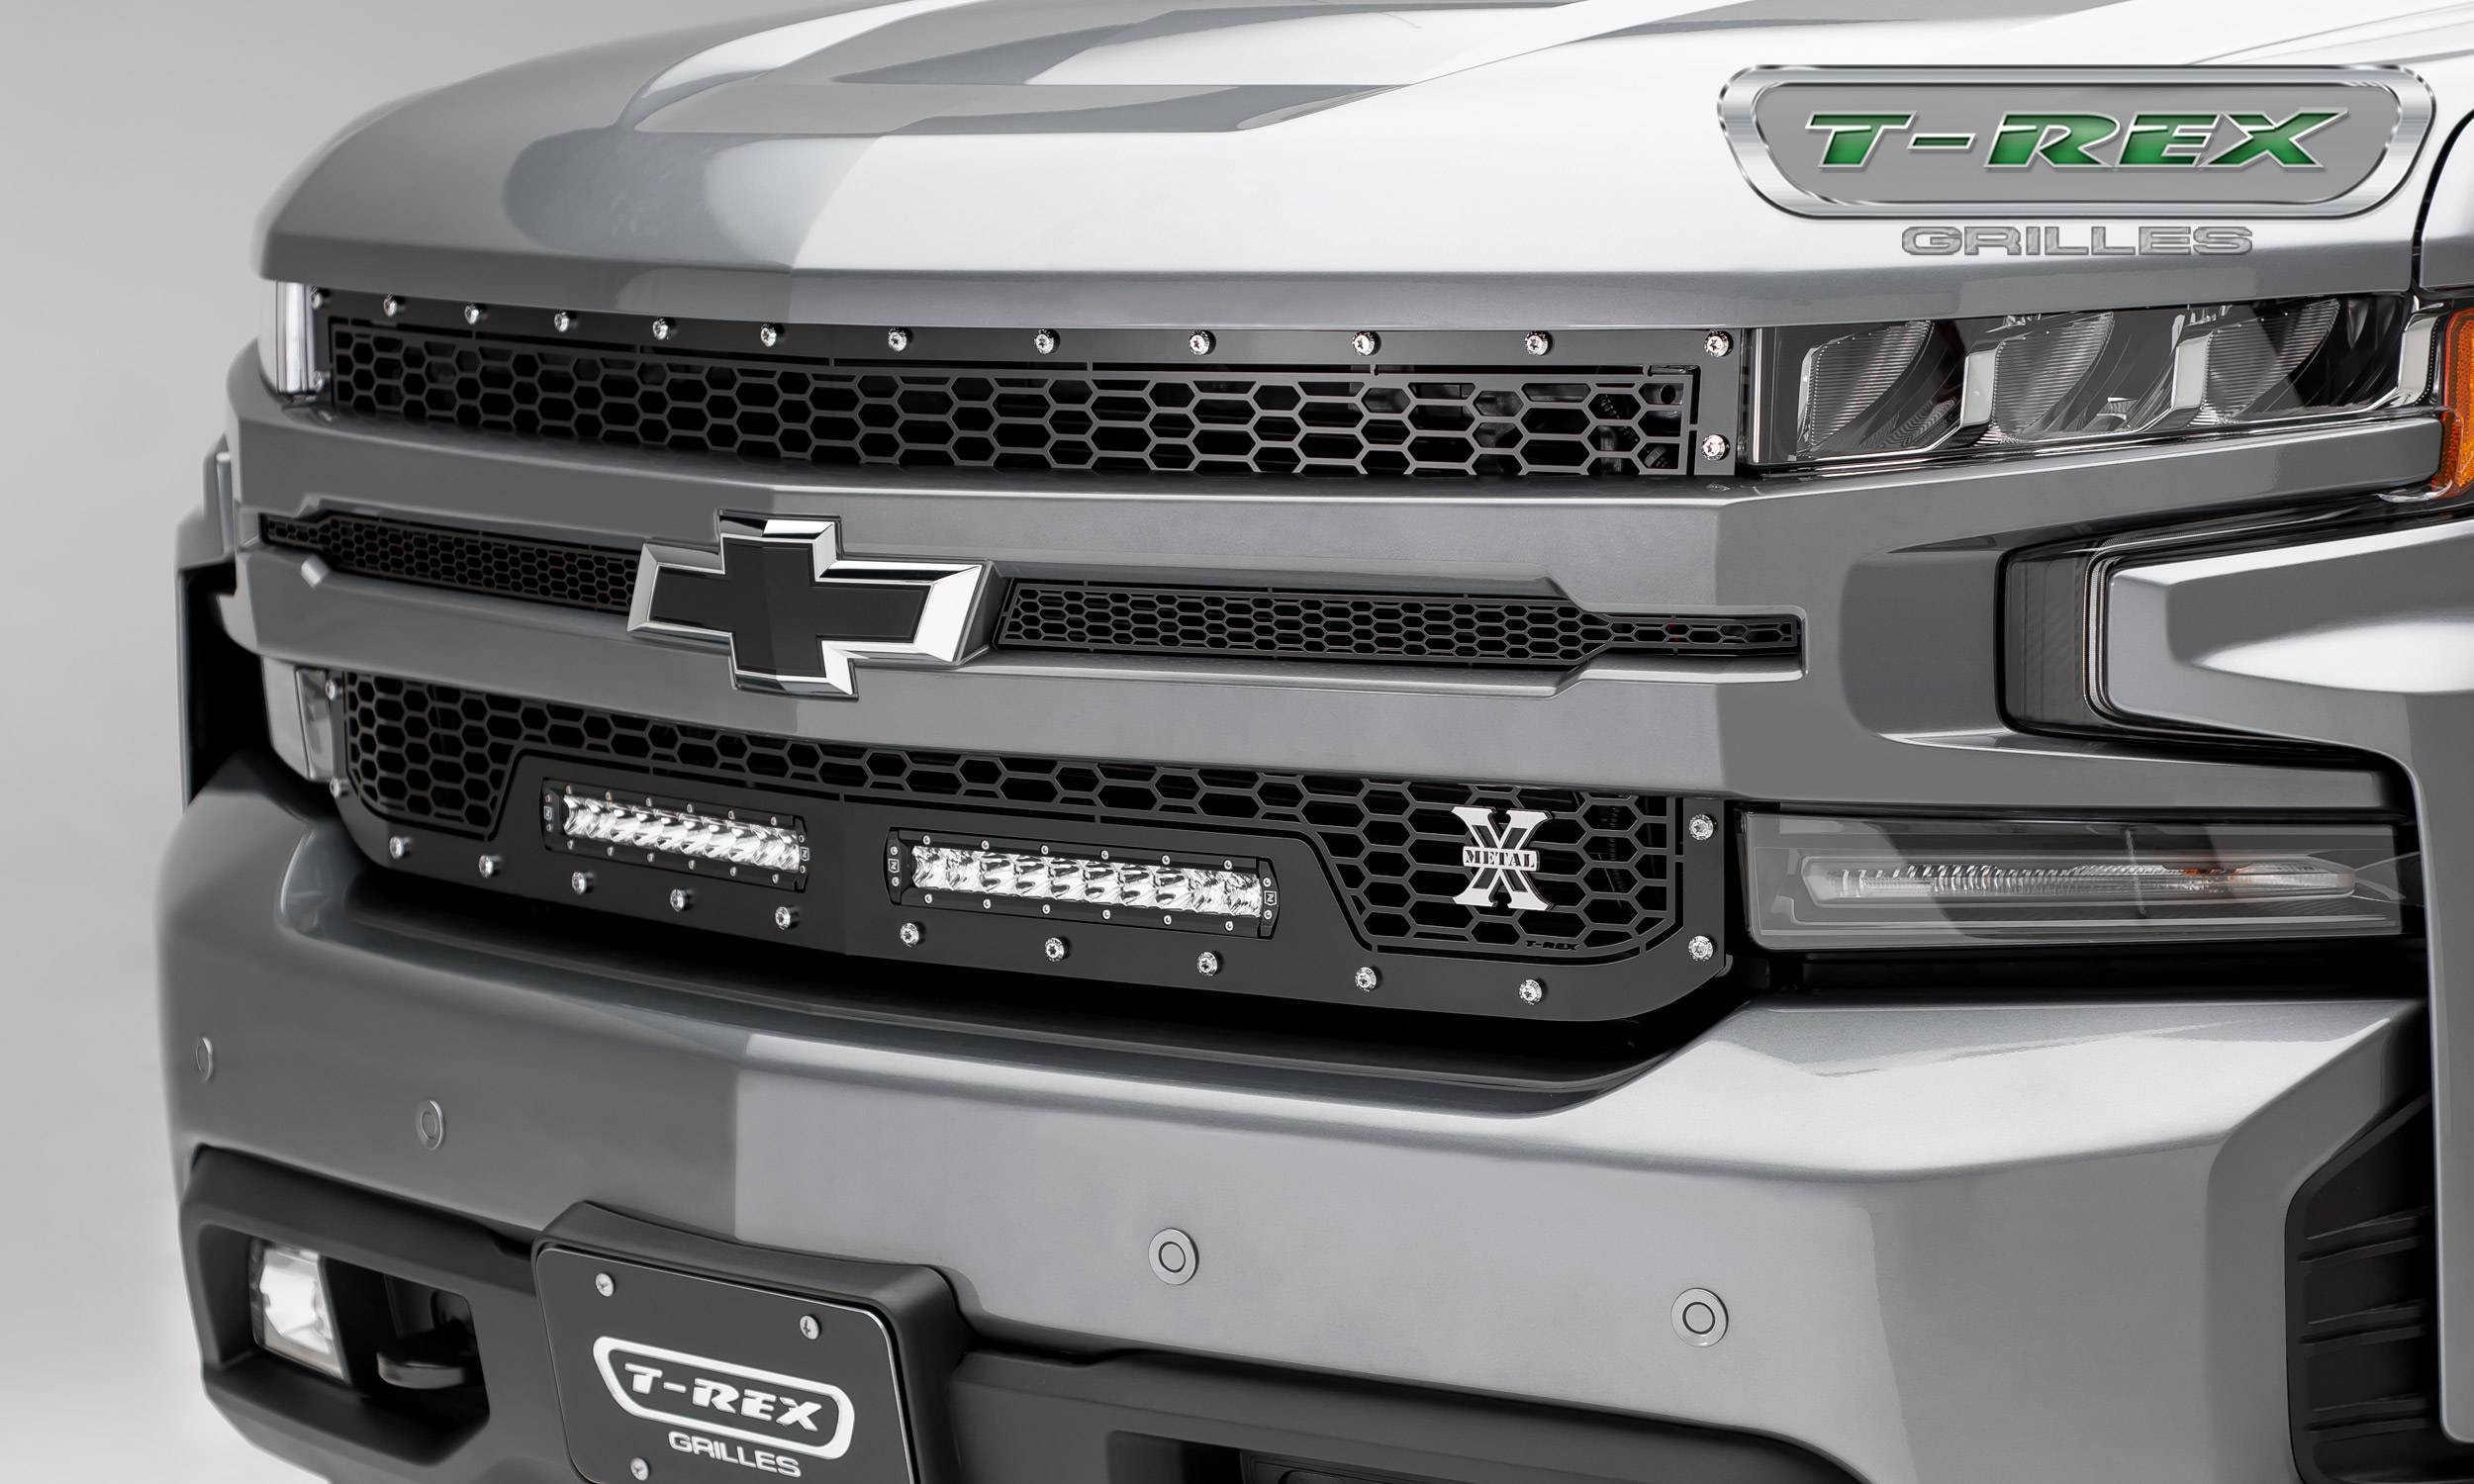 T-REX Grilles - 2019-2021 Silverado 1500 Laser Torch Grille, Black, 1 Pc, Replacement, Chrome Studs with (2) 10 Inch LEDs, Does Not Fit Vehicles with Camera - PN #7311261